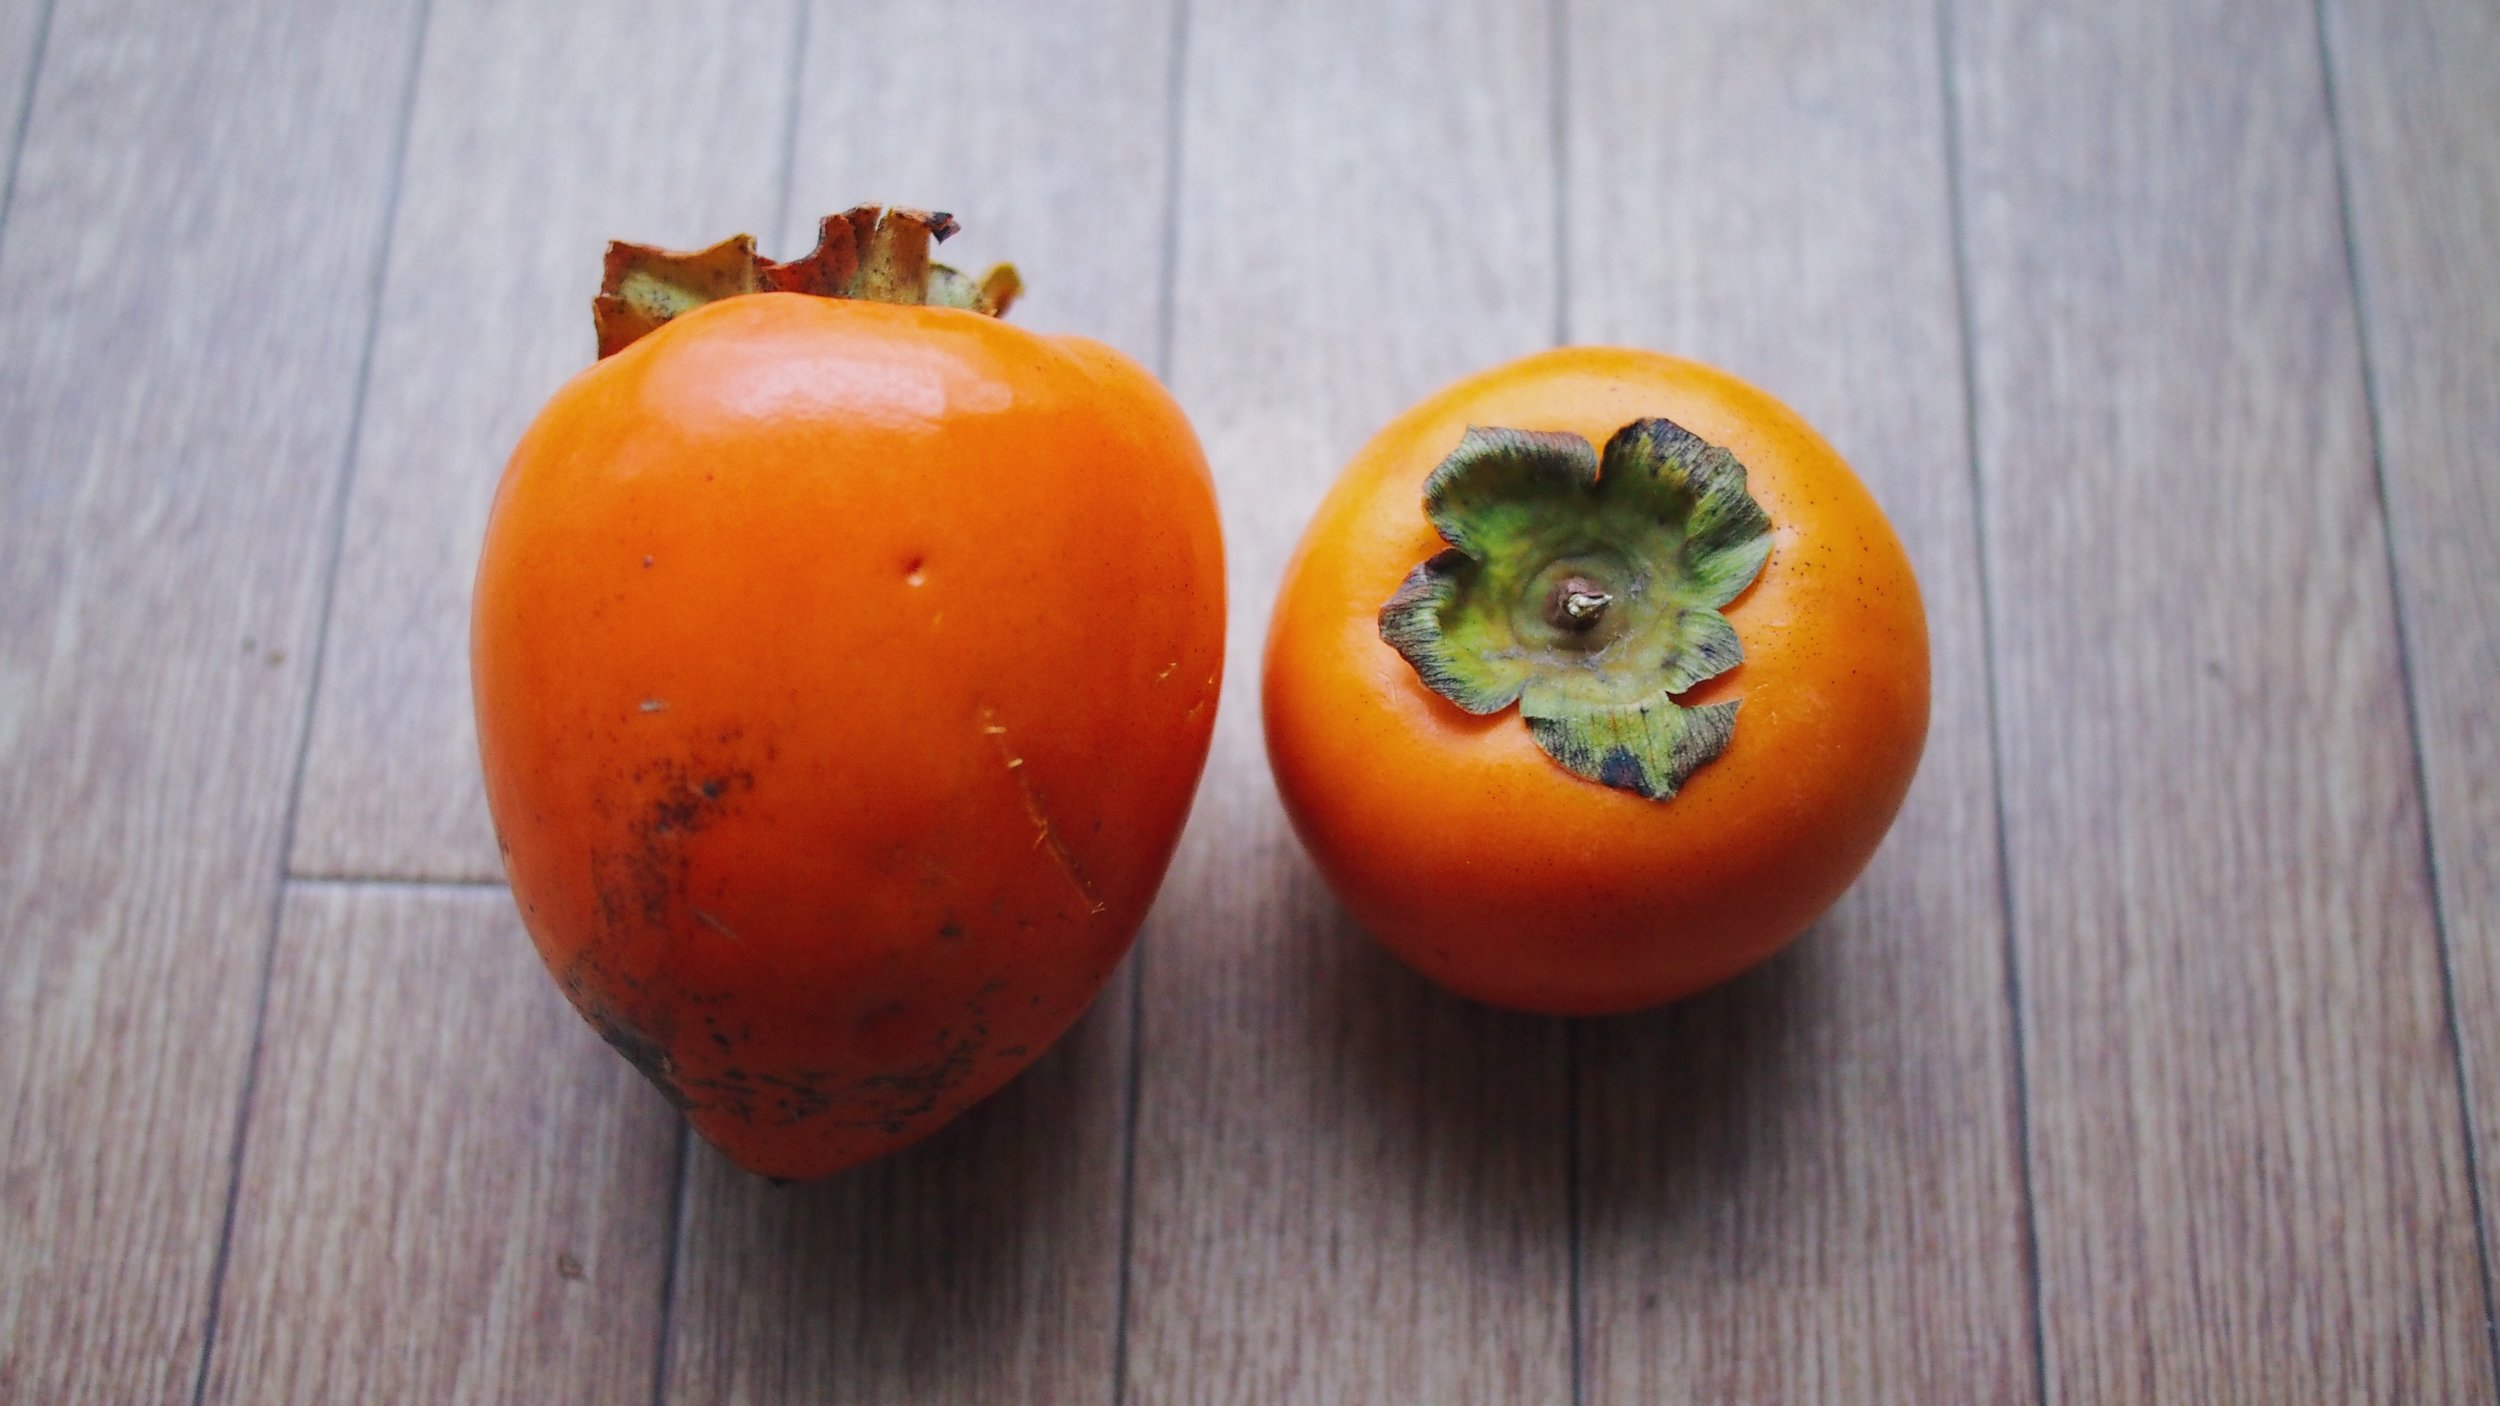 An unripe hachiya persimmon (left) and a fuyu persimmon (right)